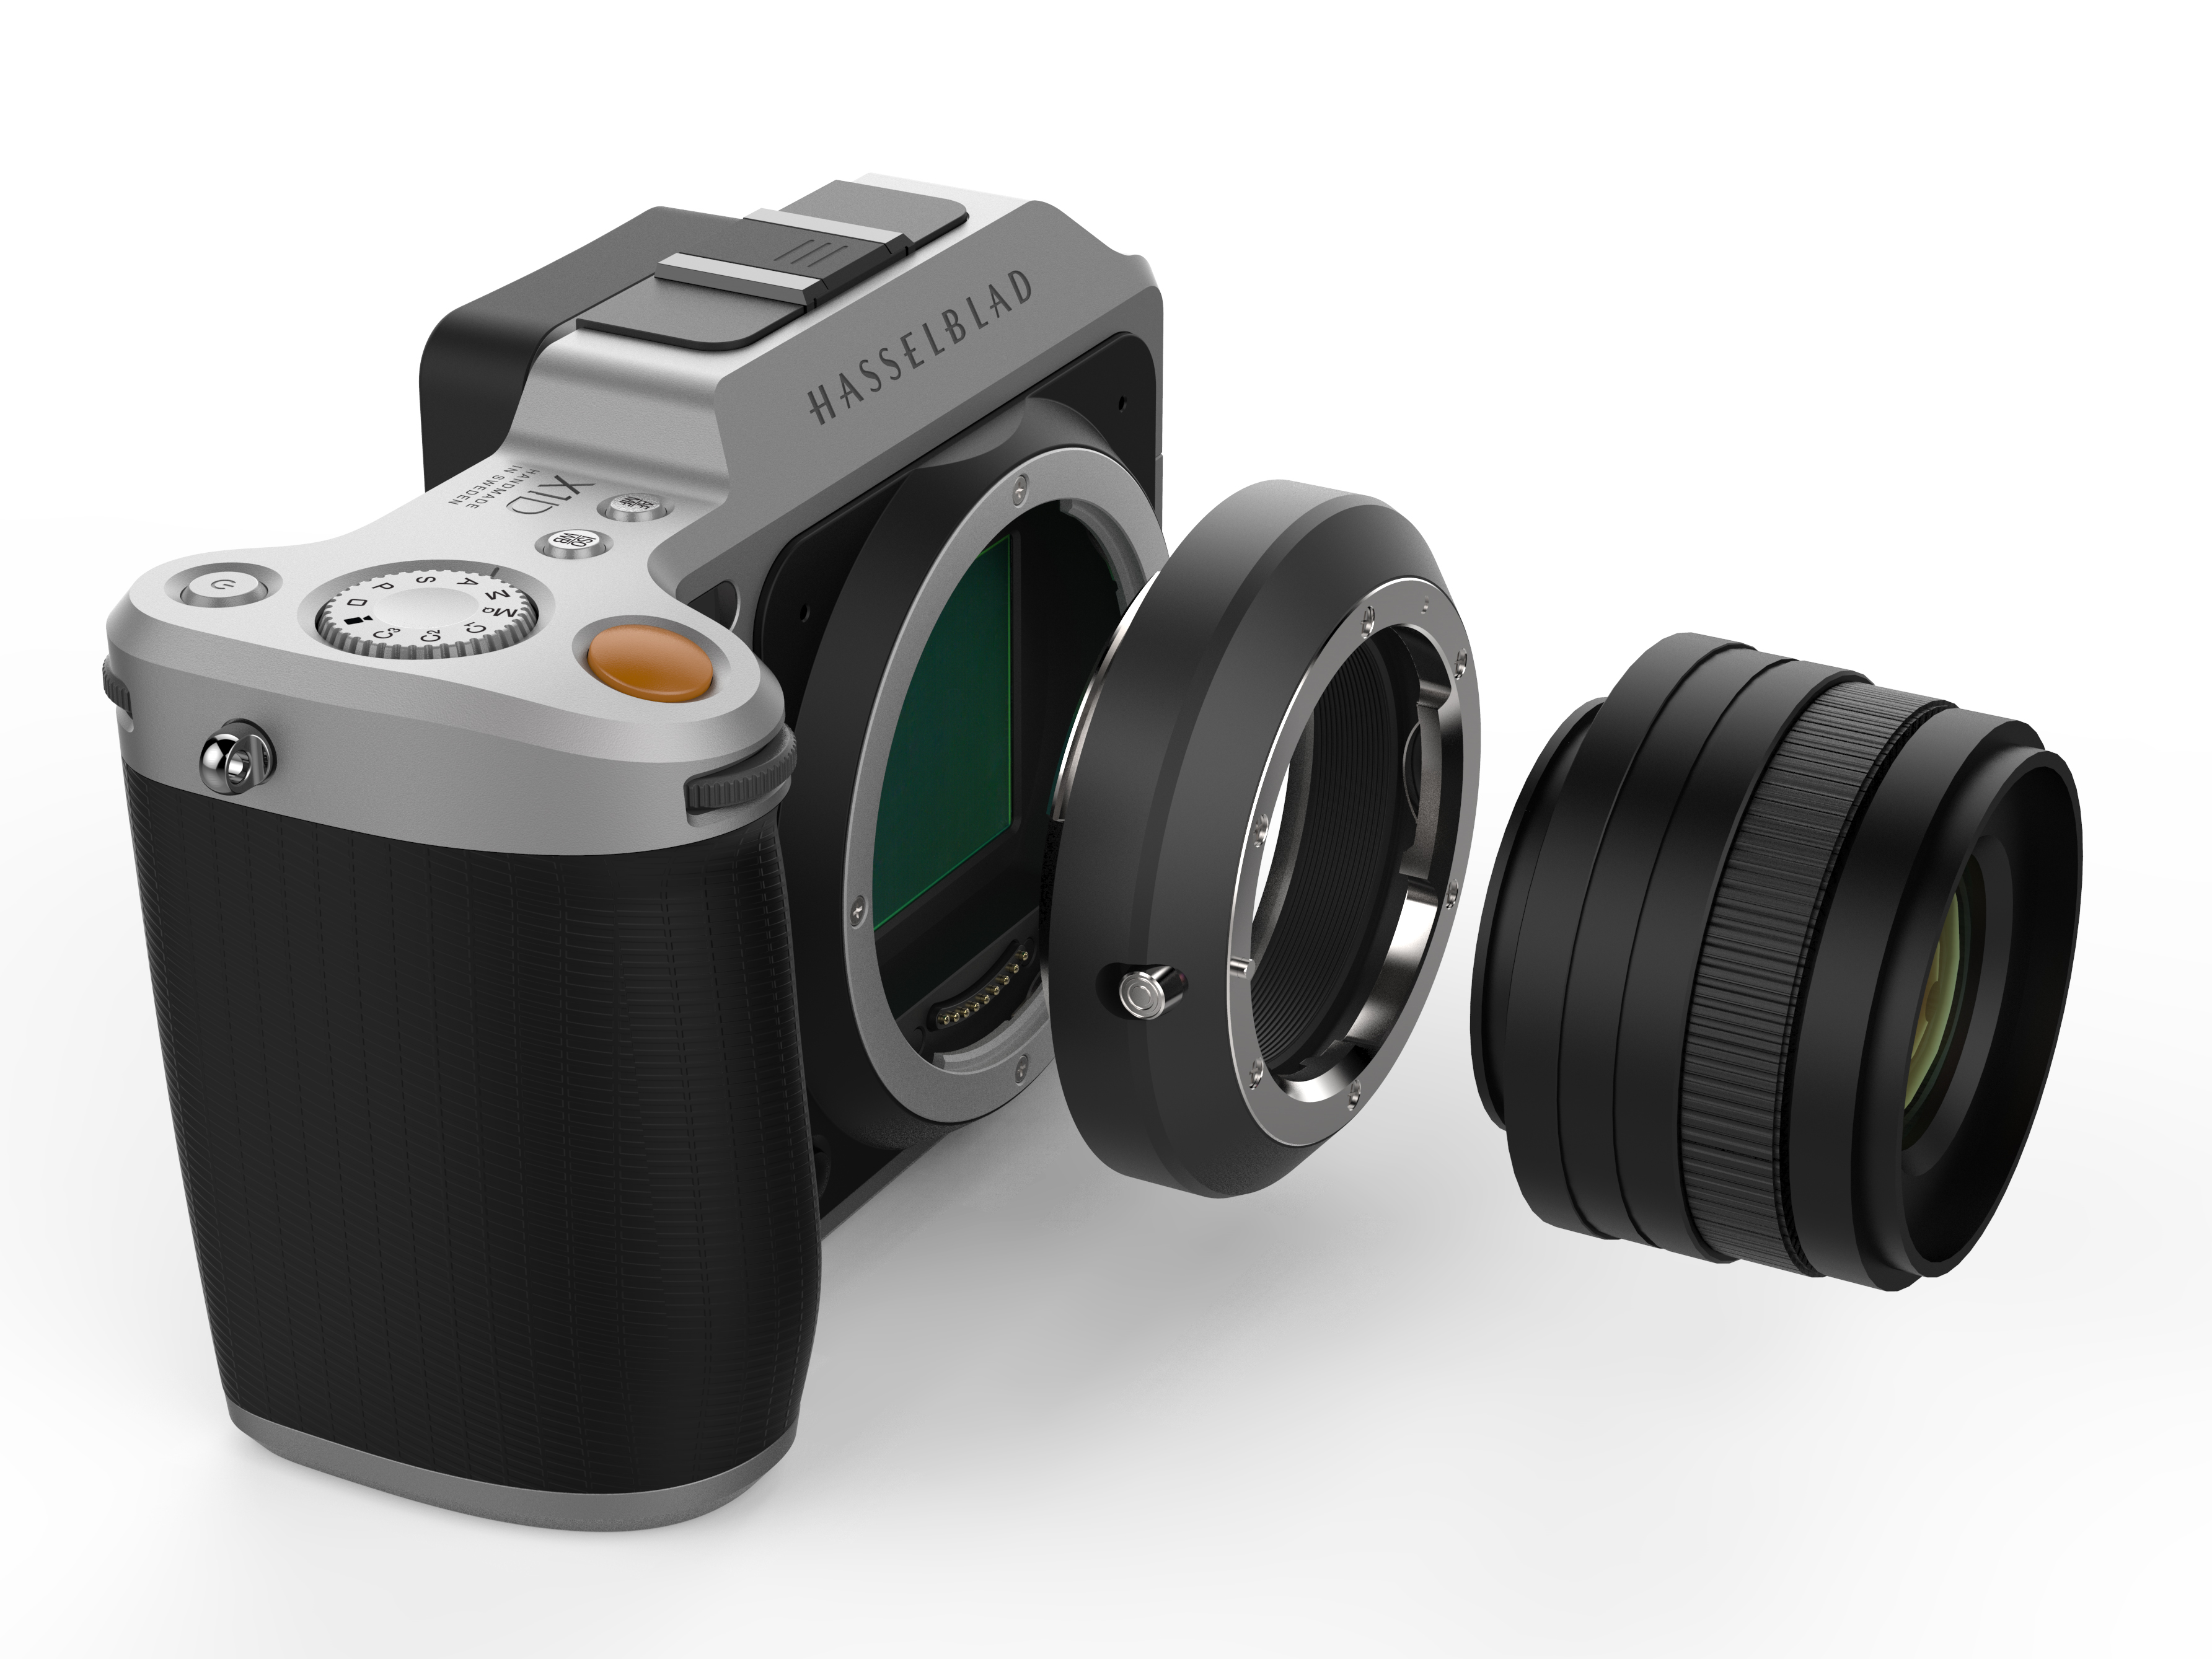 hasselblad unveils xpan lens adapter for the mirrorless medium rh dpreview com Hasselblad Xpan Samples Hasselblad Xpan Samples